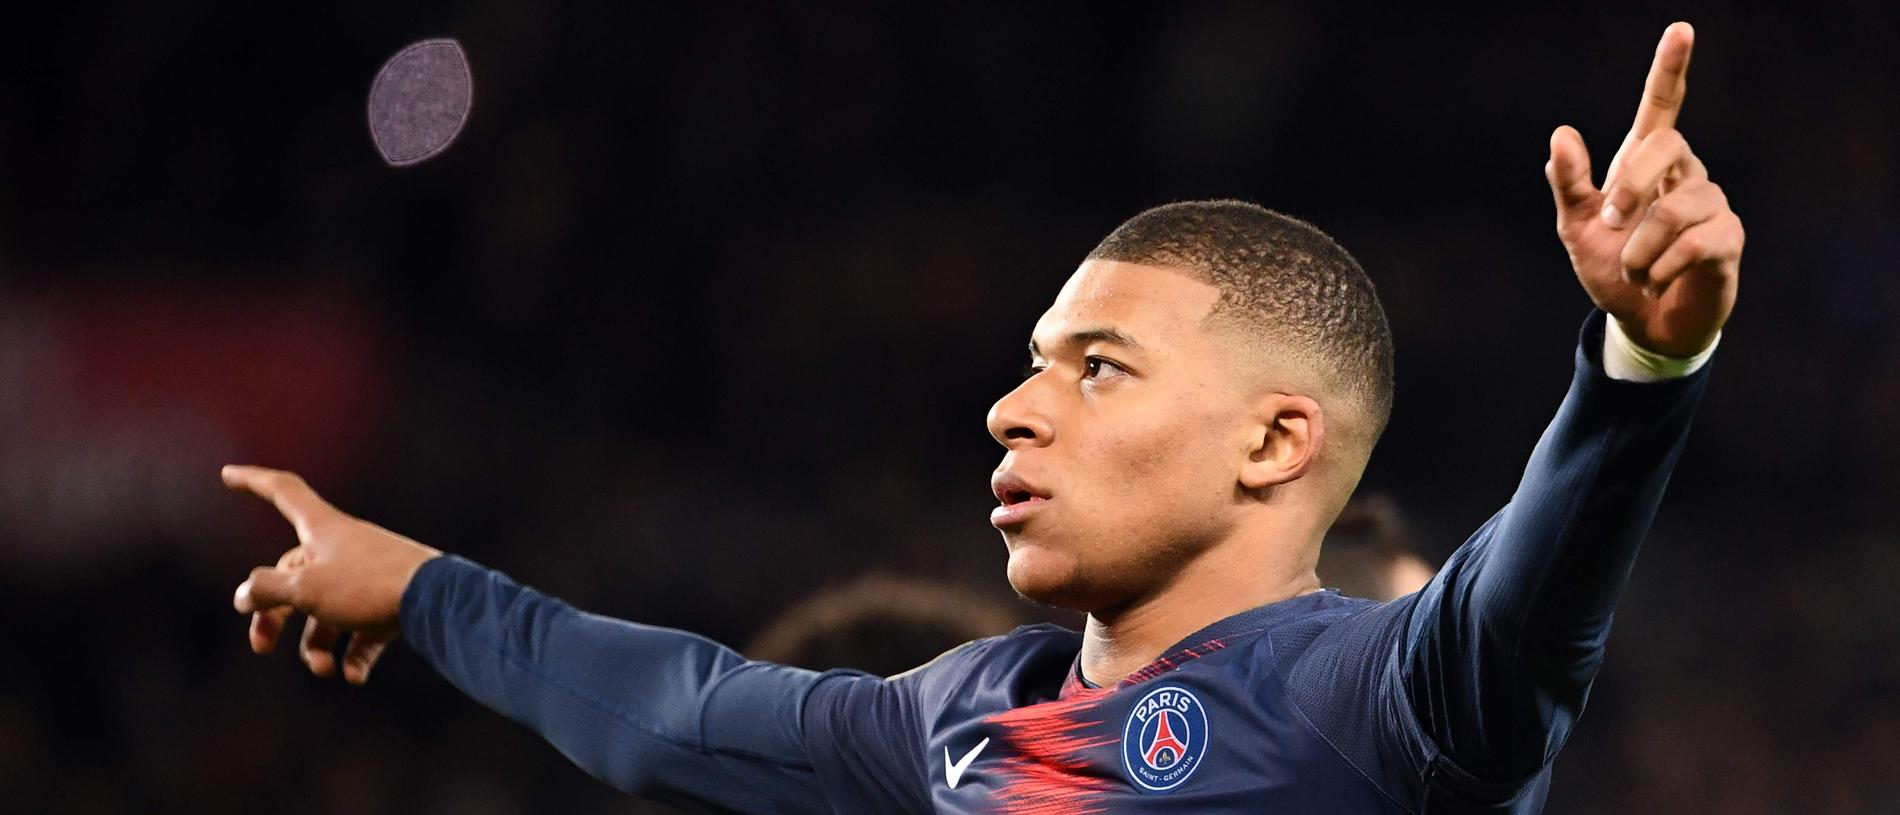 Paris Saint-Germain's French forward Kylian Mbappe celebrates after scoring a goal during the French L1 football match Paris Saint-Germain (PSG) vs Olympique de Marseille (OM), on March 17, 2019 at the Parc des Princes stadium in Paris. (Photo by FRANCK FIFE / AFP)